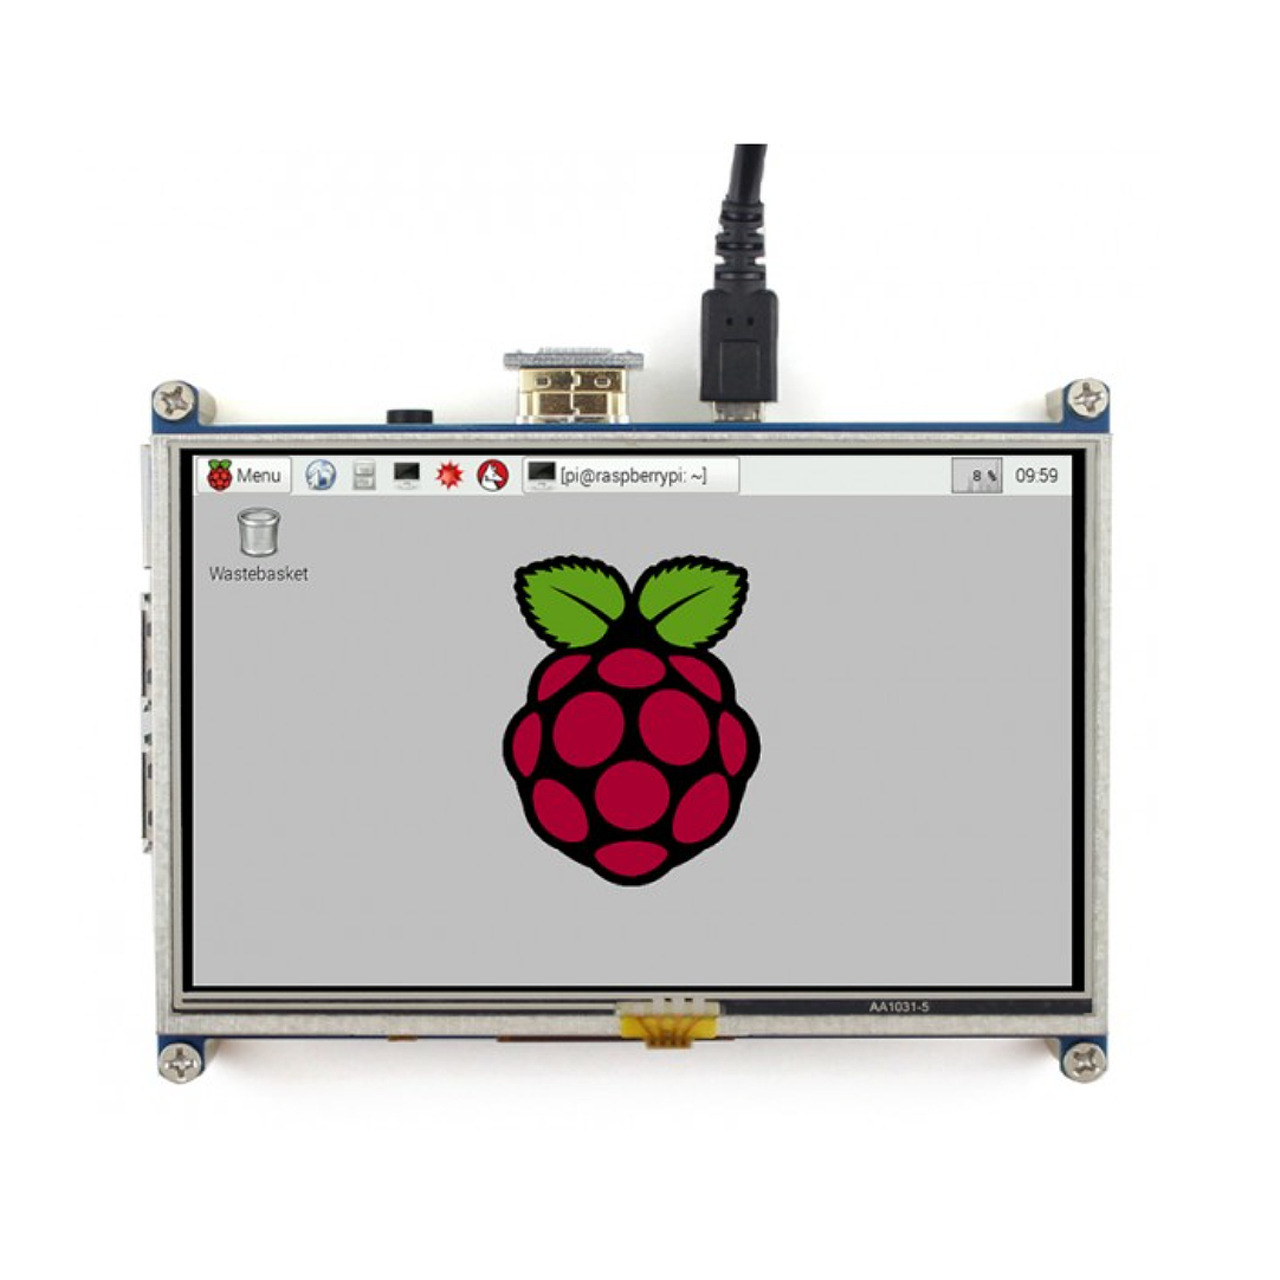 JOY-iT 12-7 cm (5) Touch-Display für Raspberry Pi- 800 x 480 Pixel